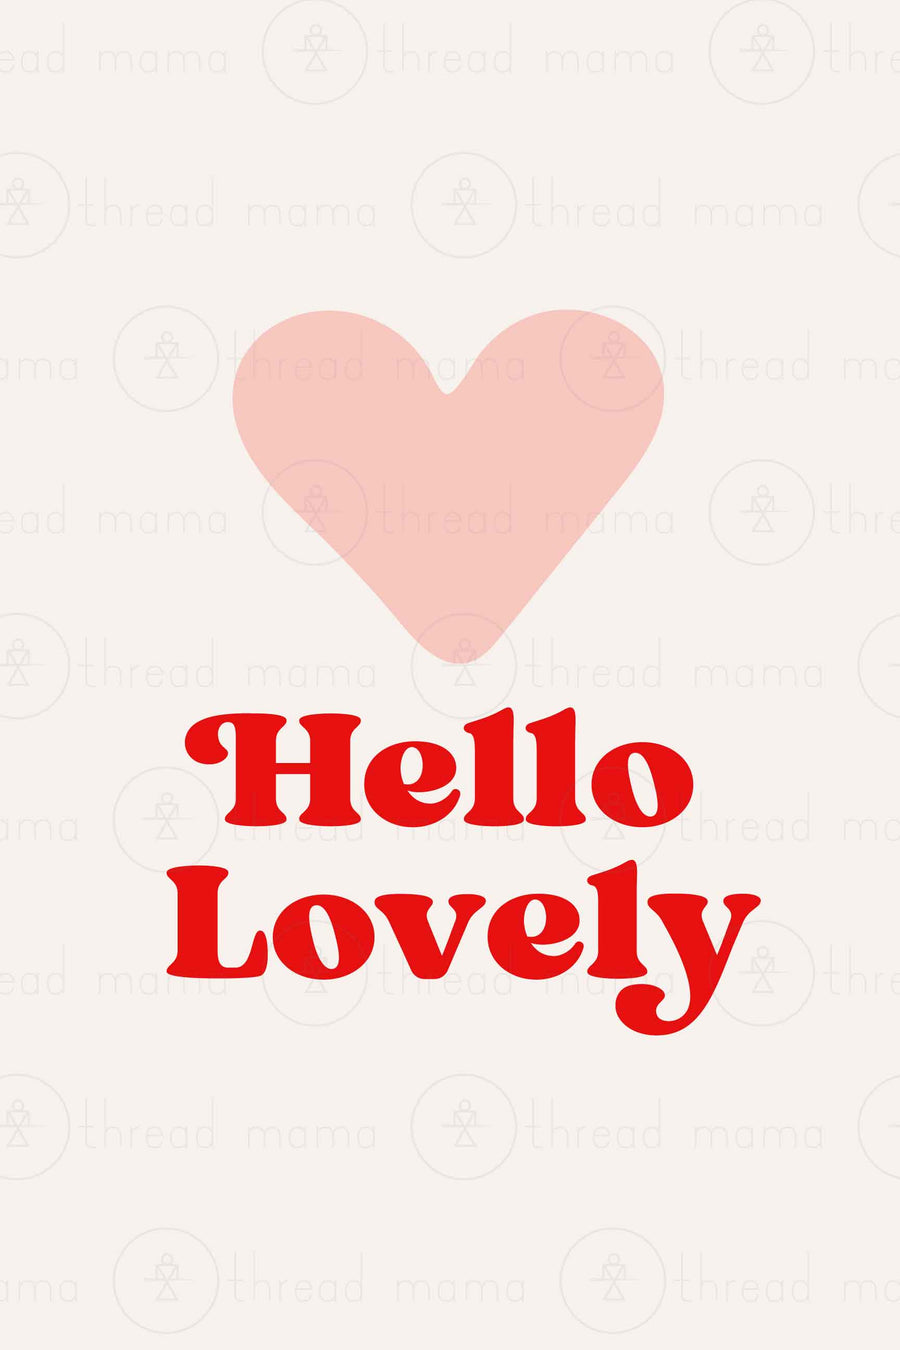 Hello Lovely (Printable Poster Collection)